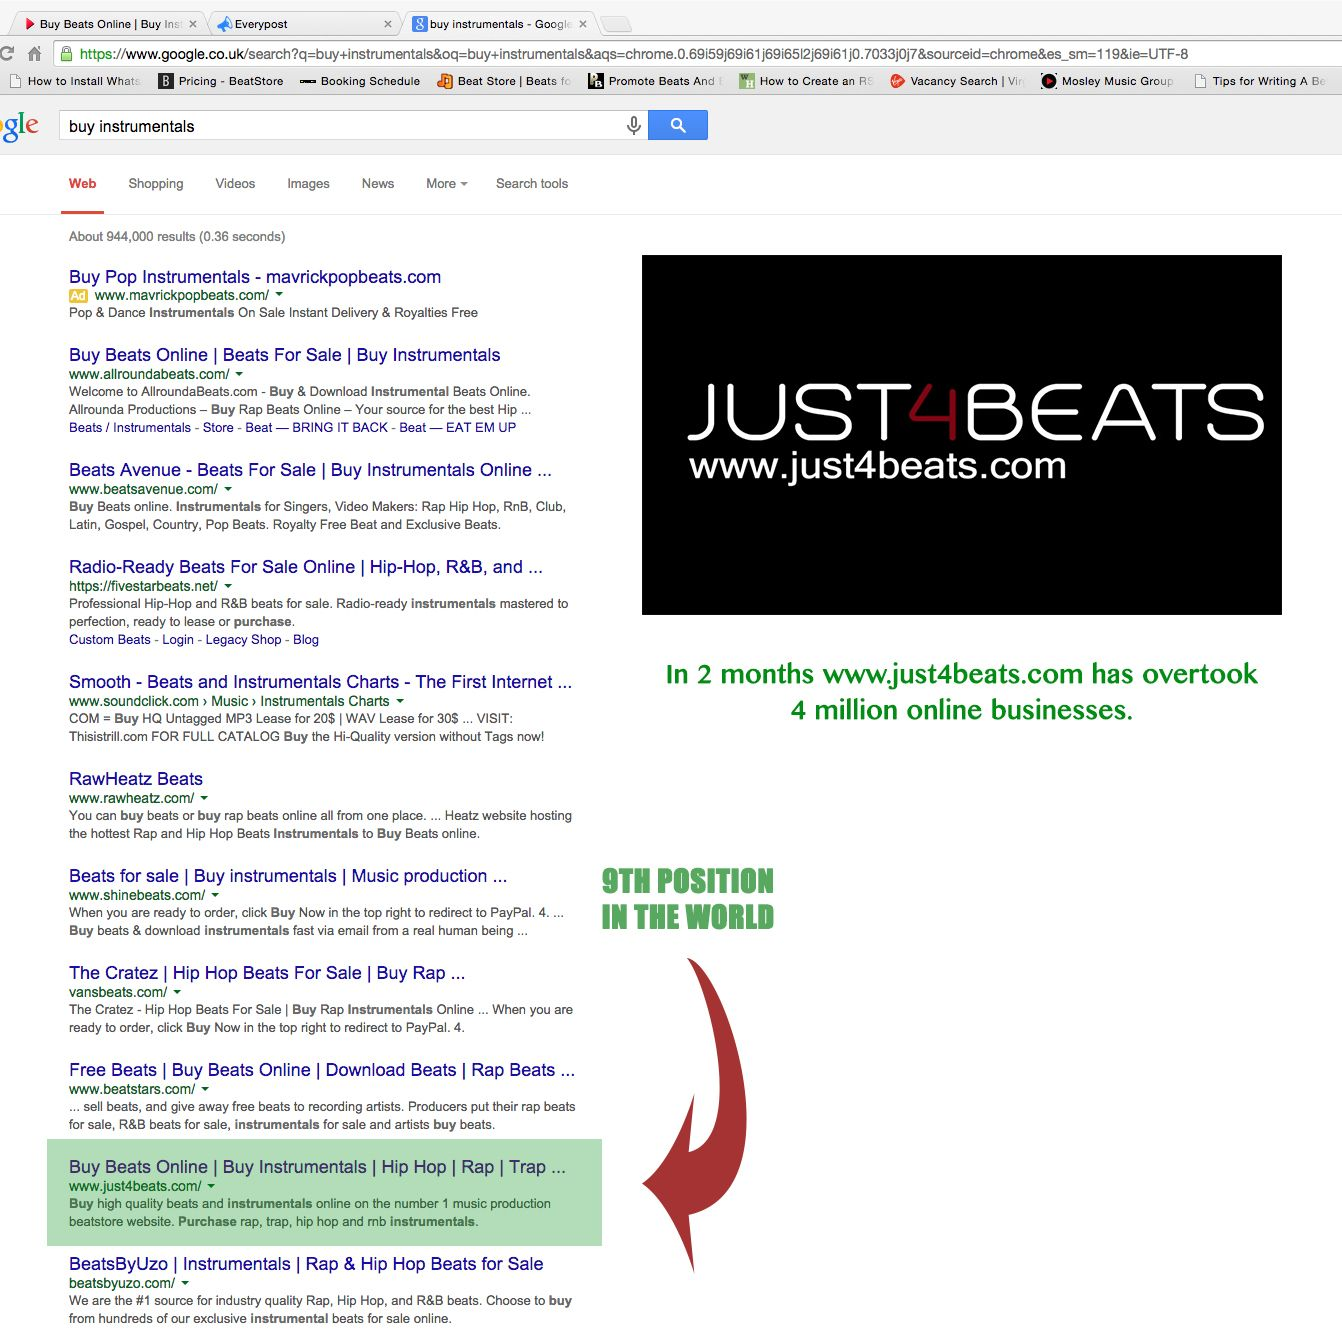 www just4beats com professional music production website is